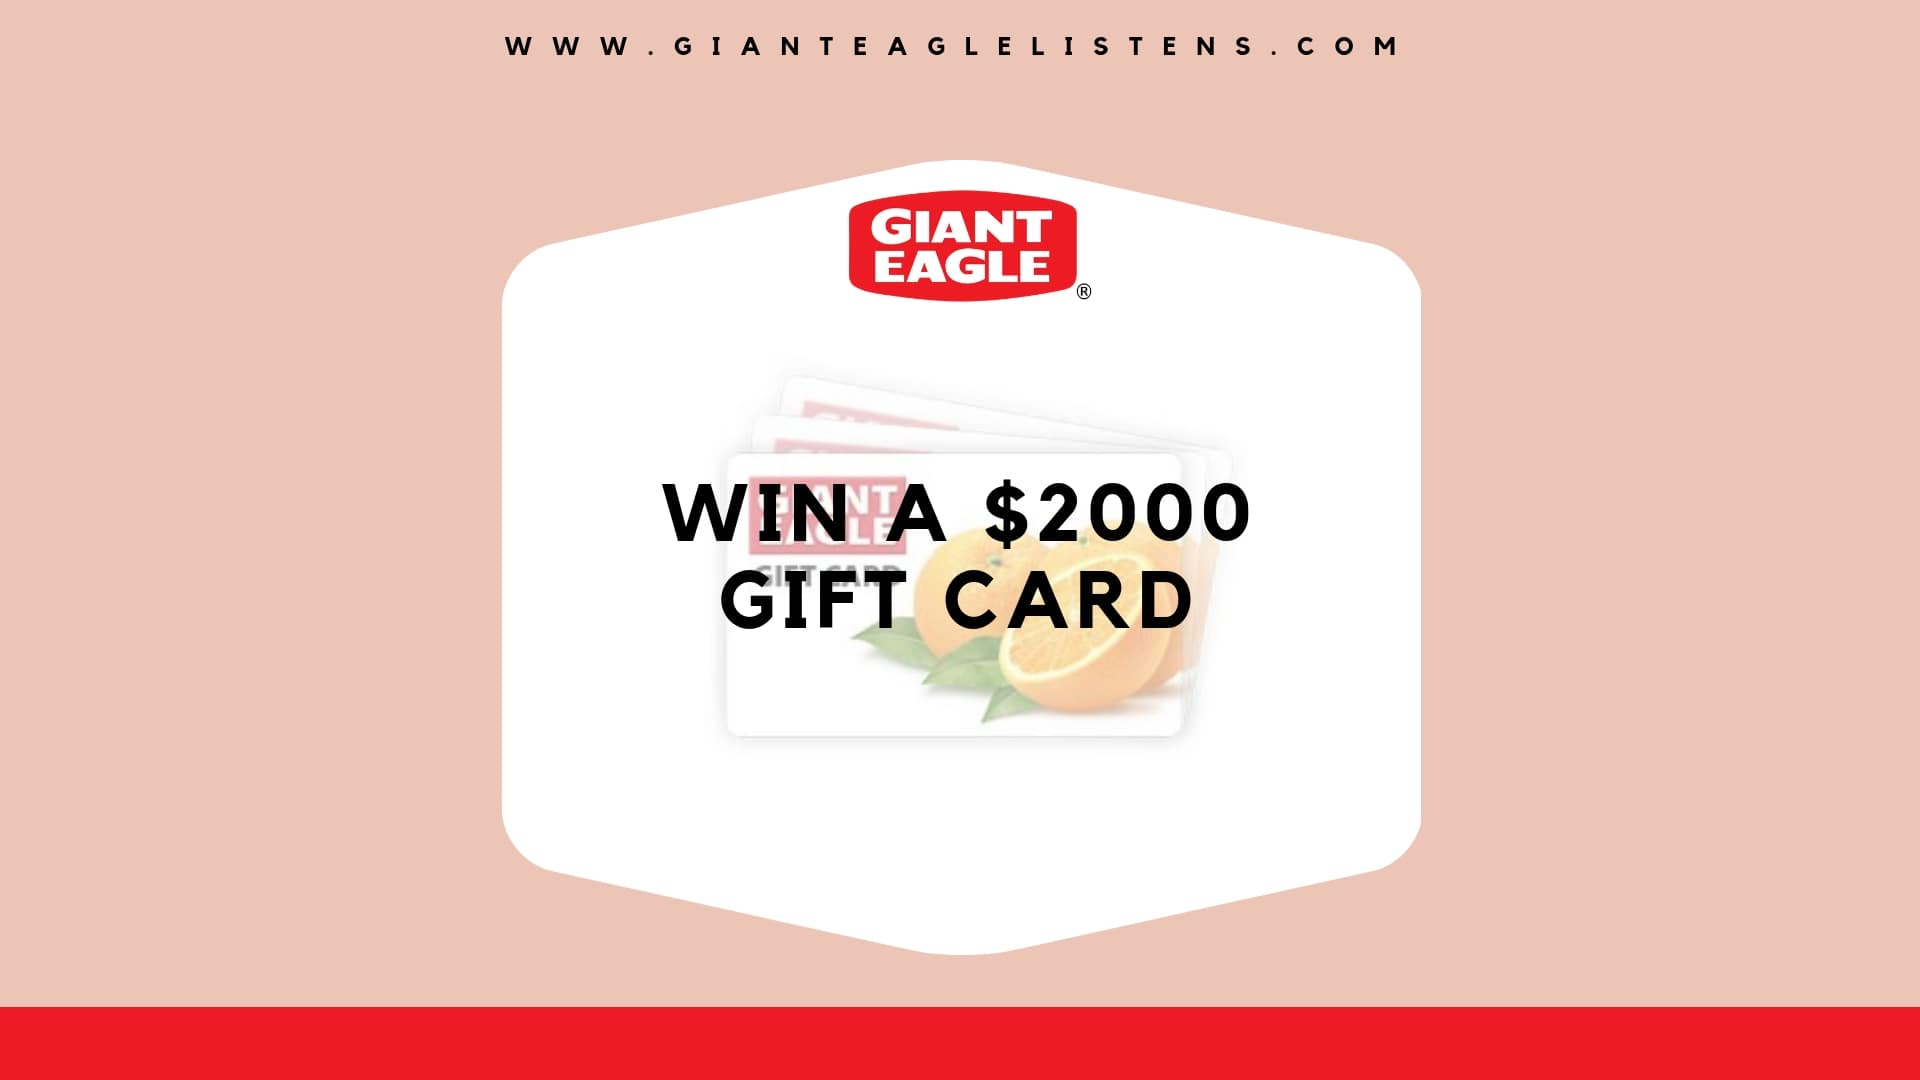 GiantEagleListens: Complete the Survey & Win $2,000 Giant Eagle Gift Card